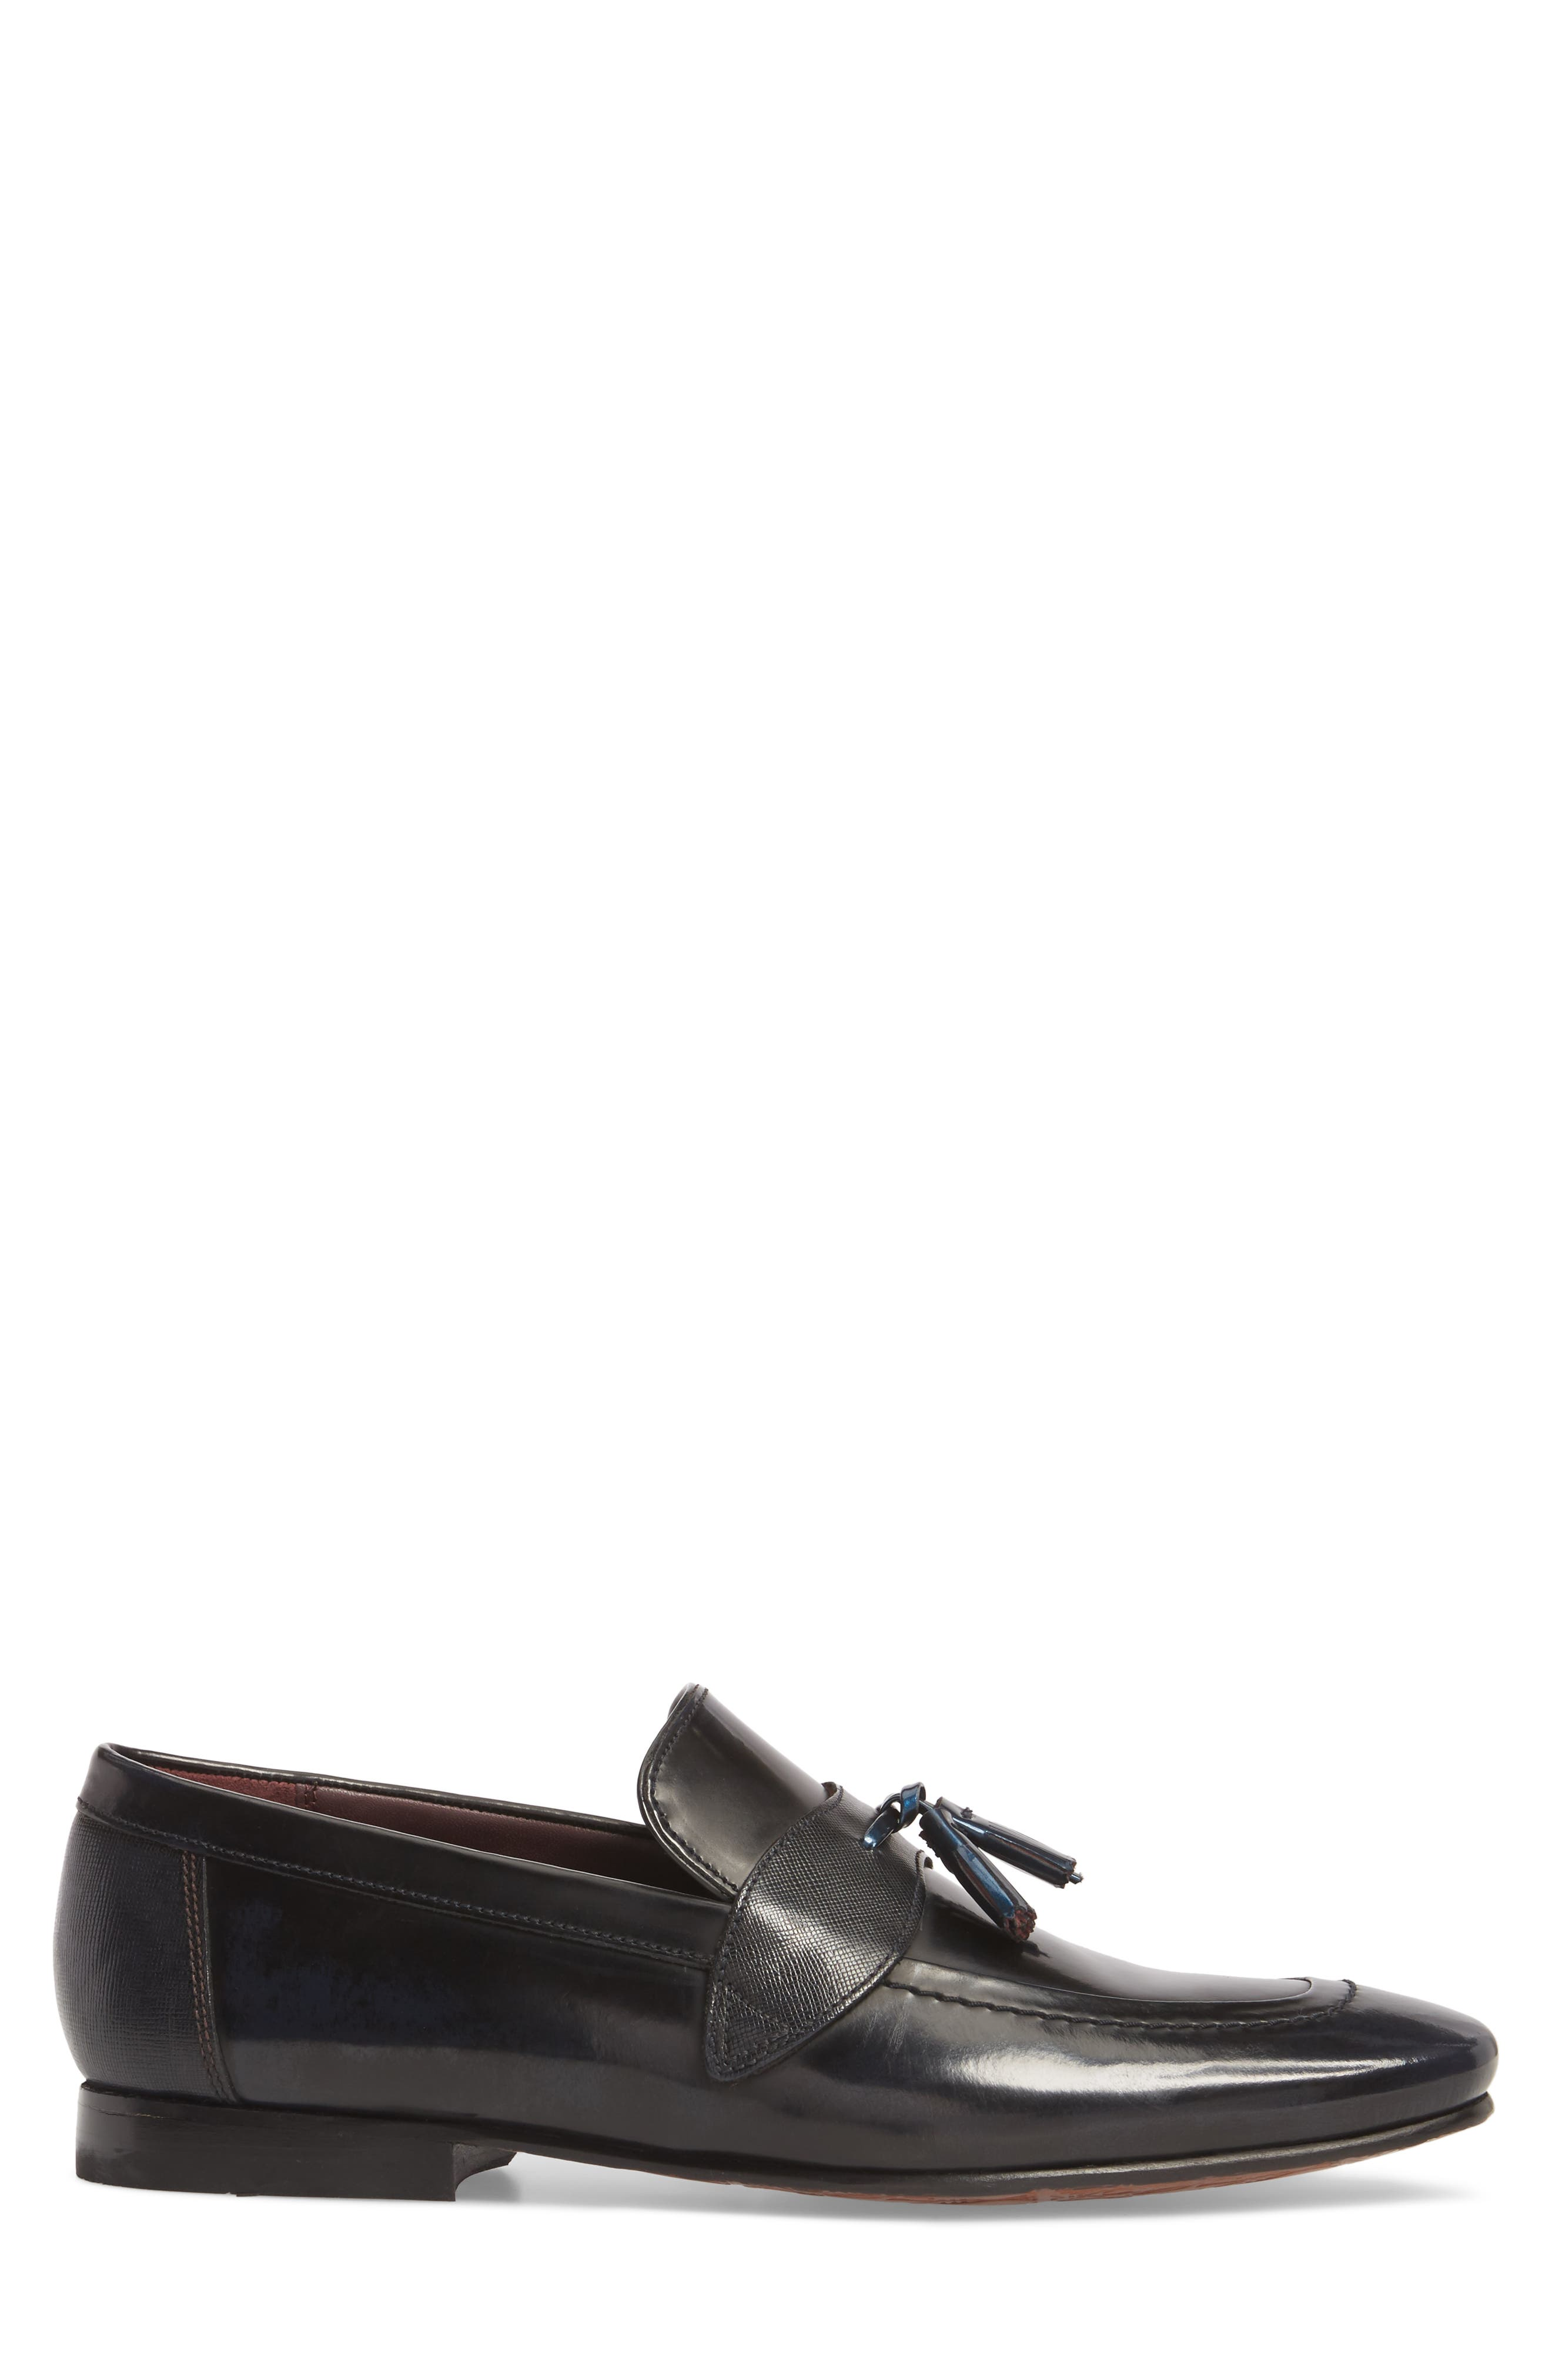 Grafit Tassel Loafer,                             Alternate thumbnail 3, color,                             416